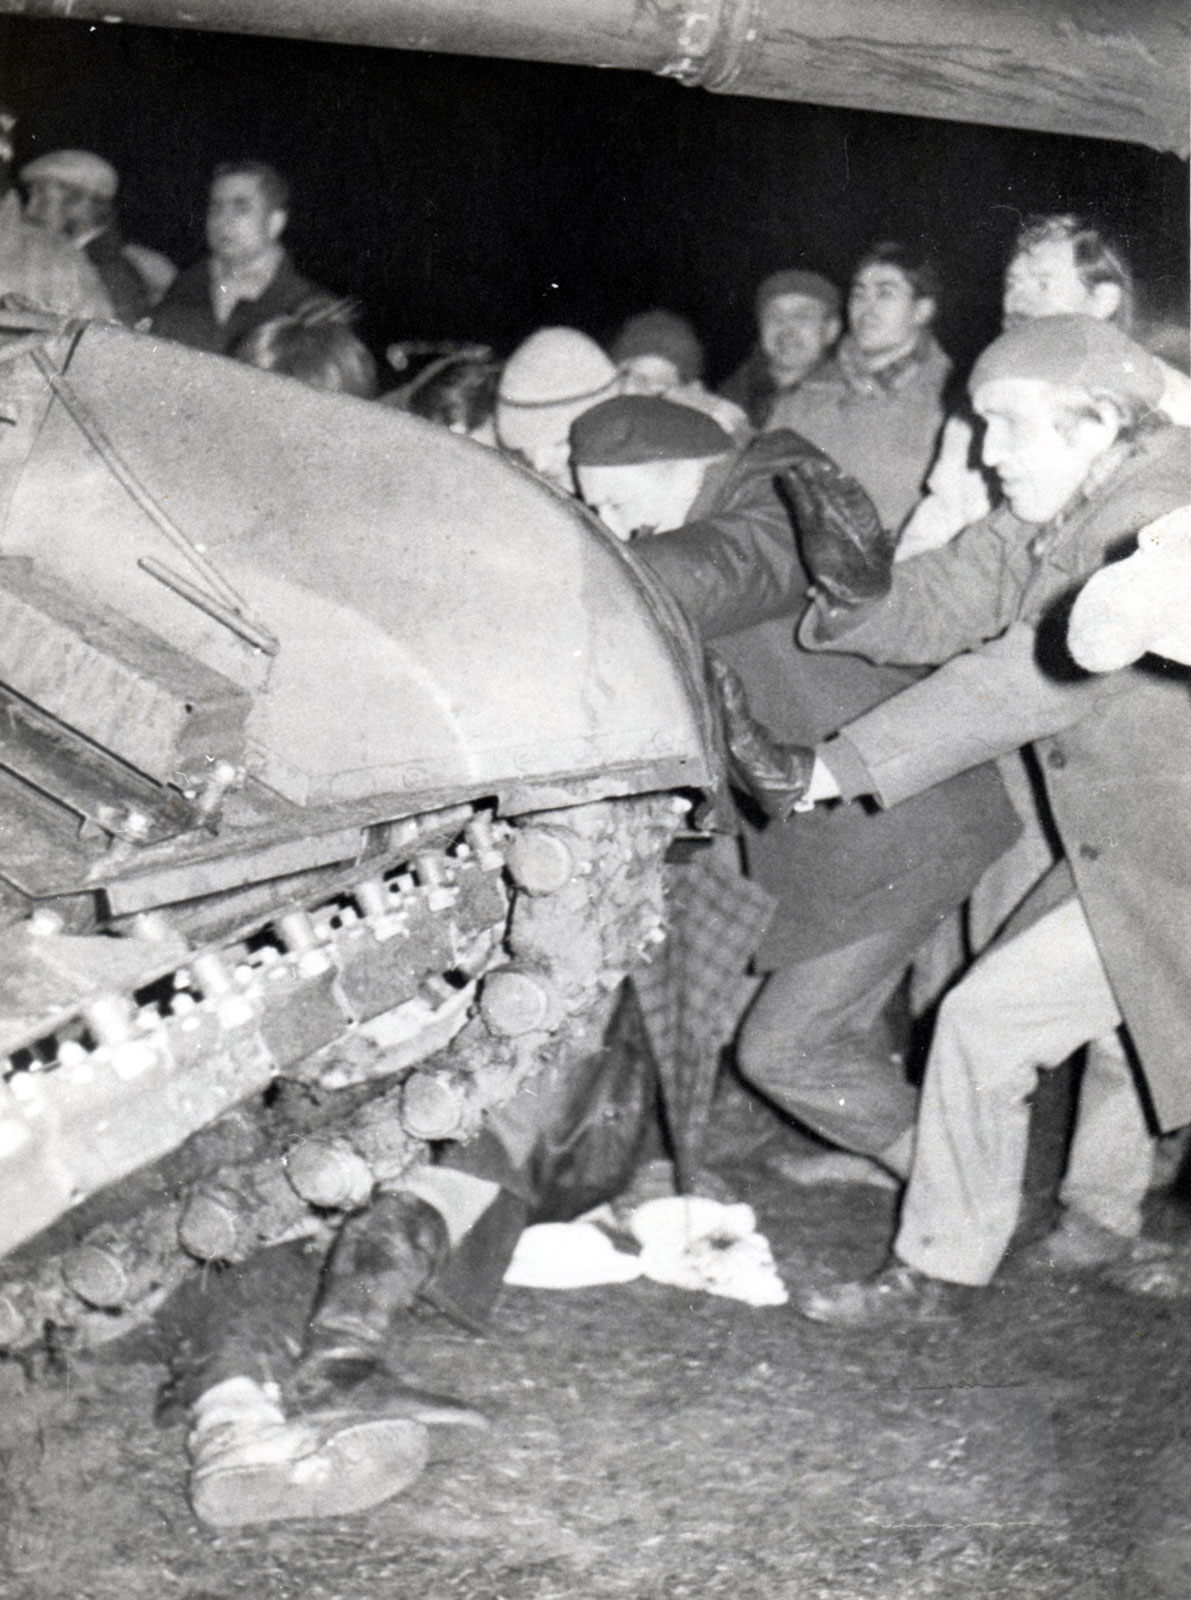 January 13, 1991, 1:00am-2:00am: Deadly Soviet Military Crackdown In Vilnius